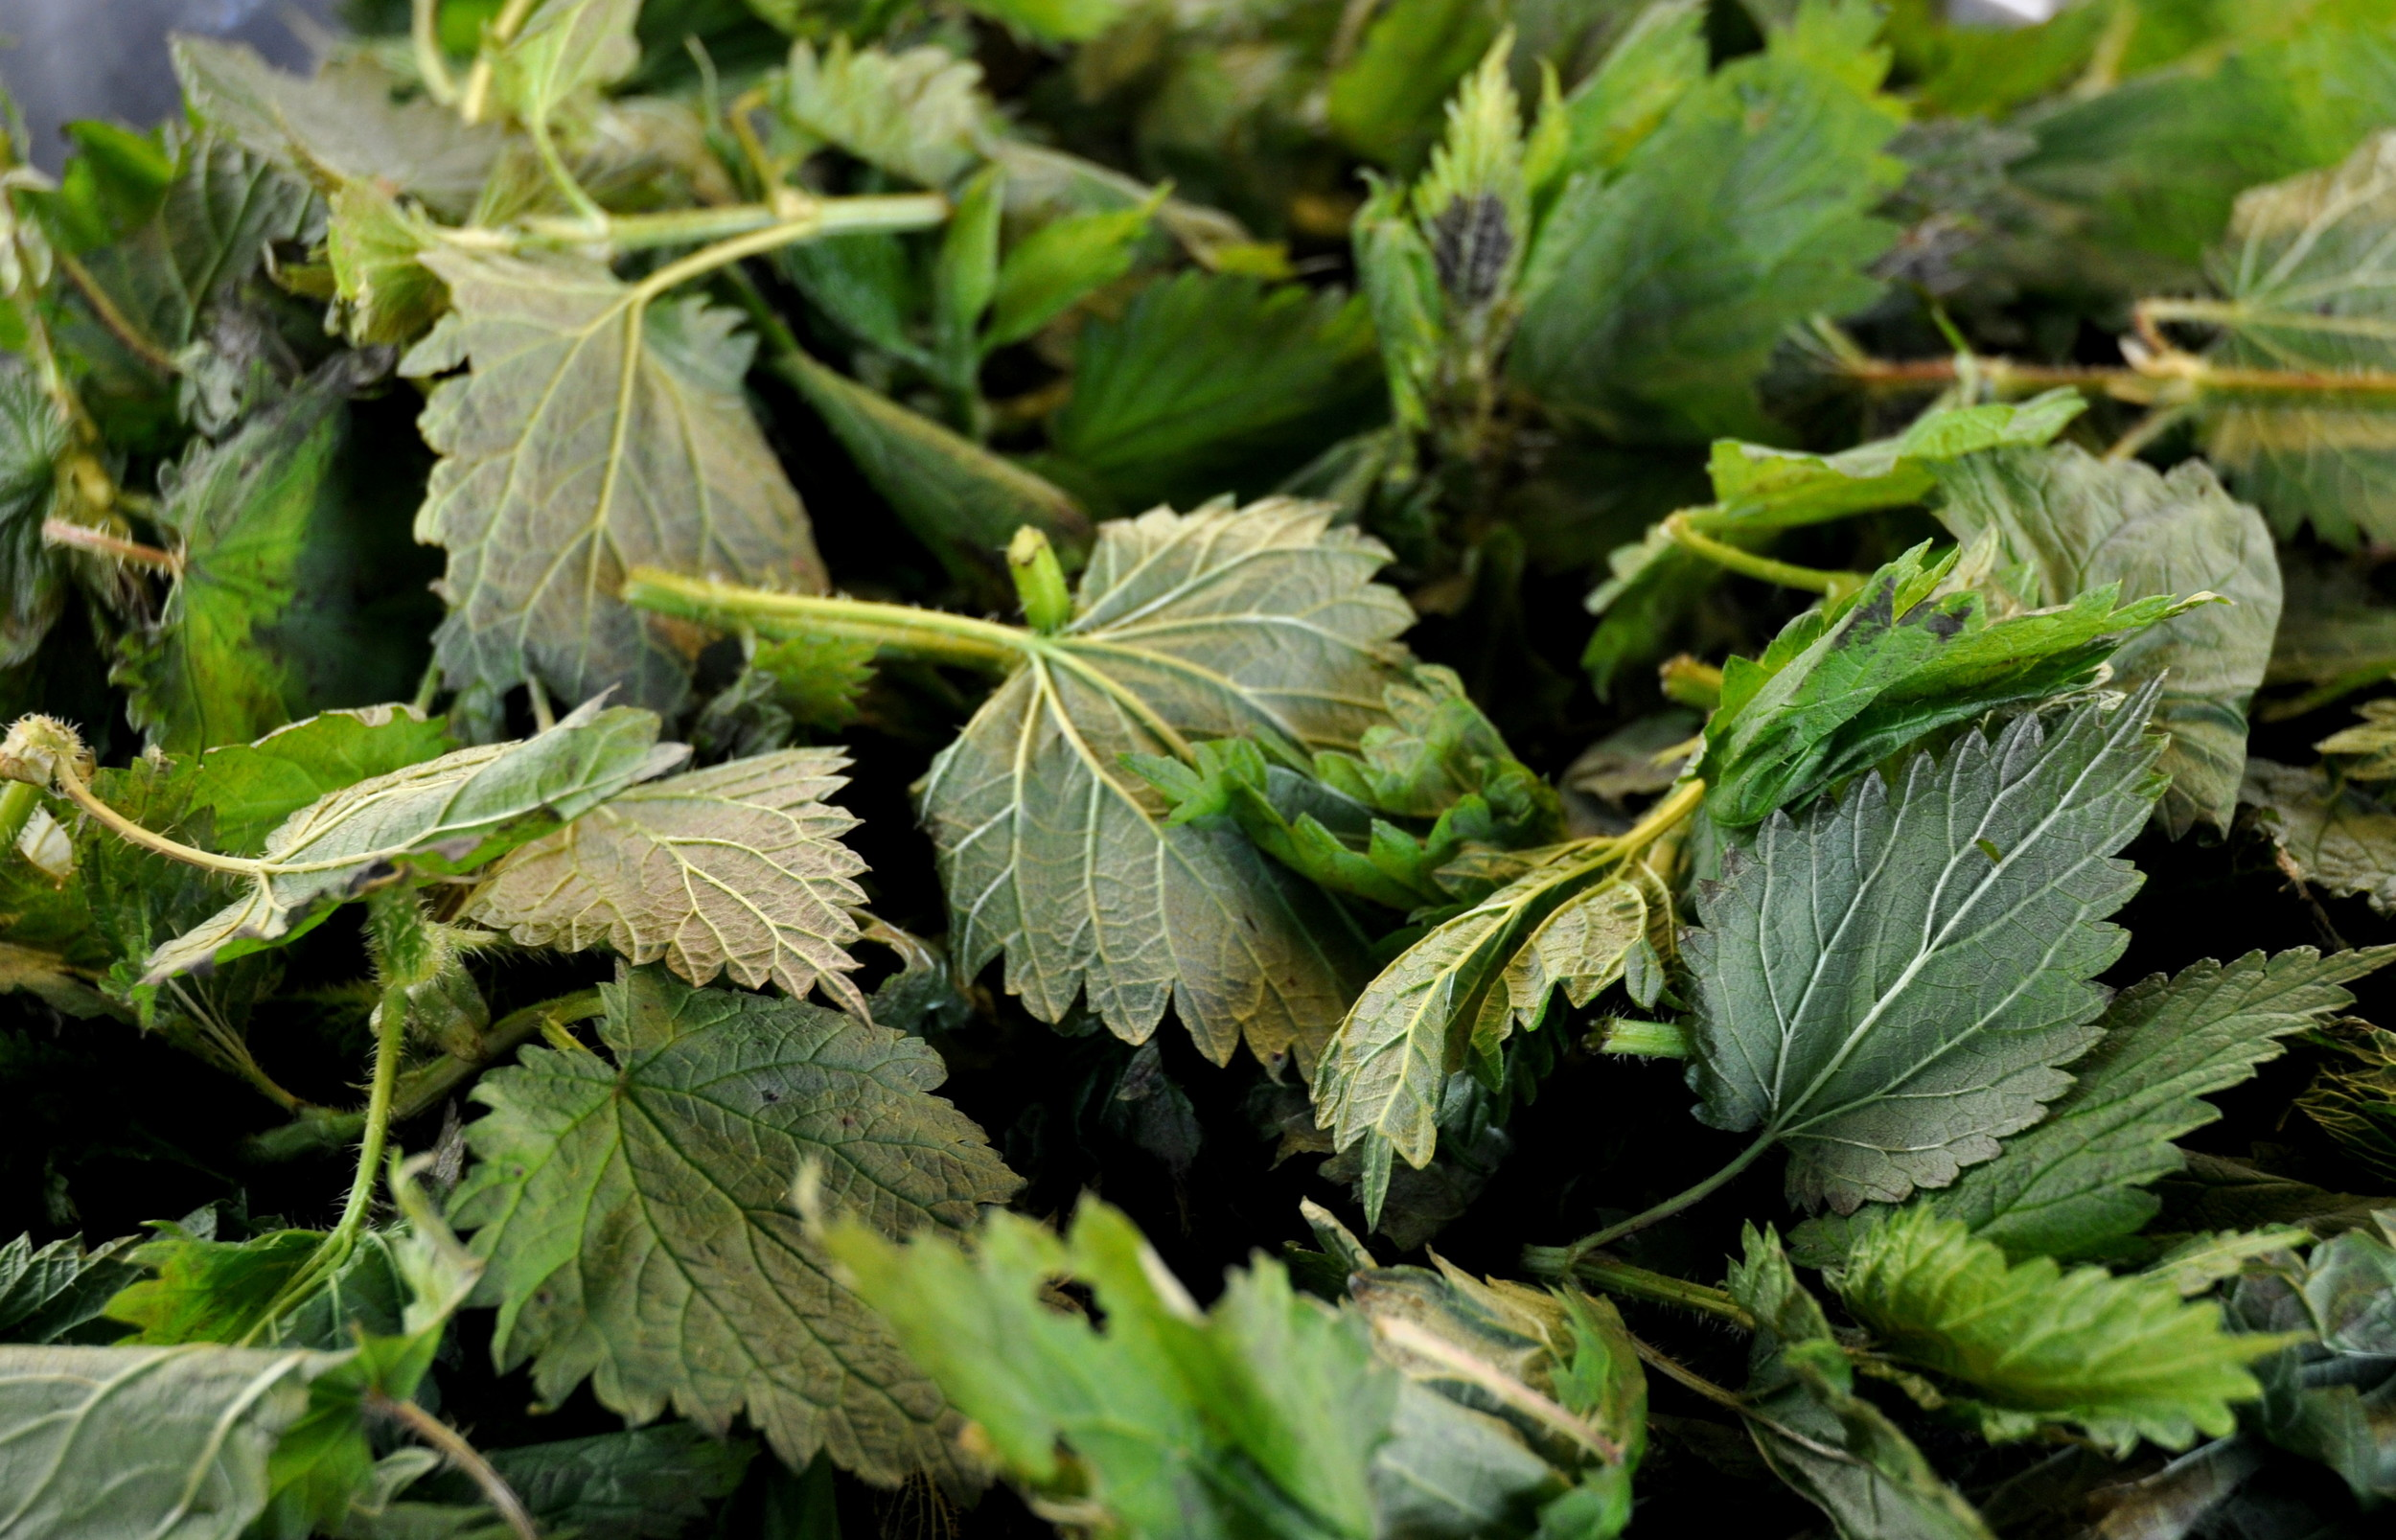 Nettles from Foraged & Found Edibles at Ballard Farmers Market. Copyright Zachary D. Lyons.